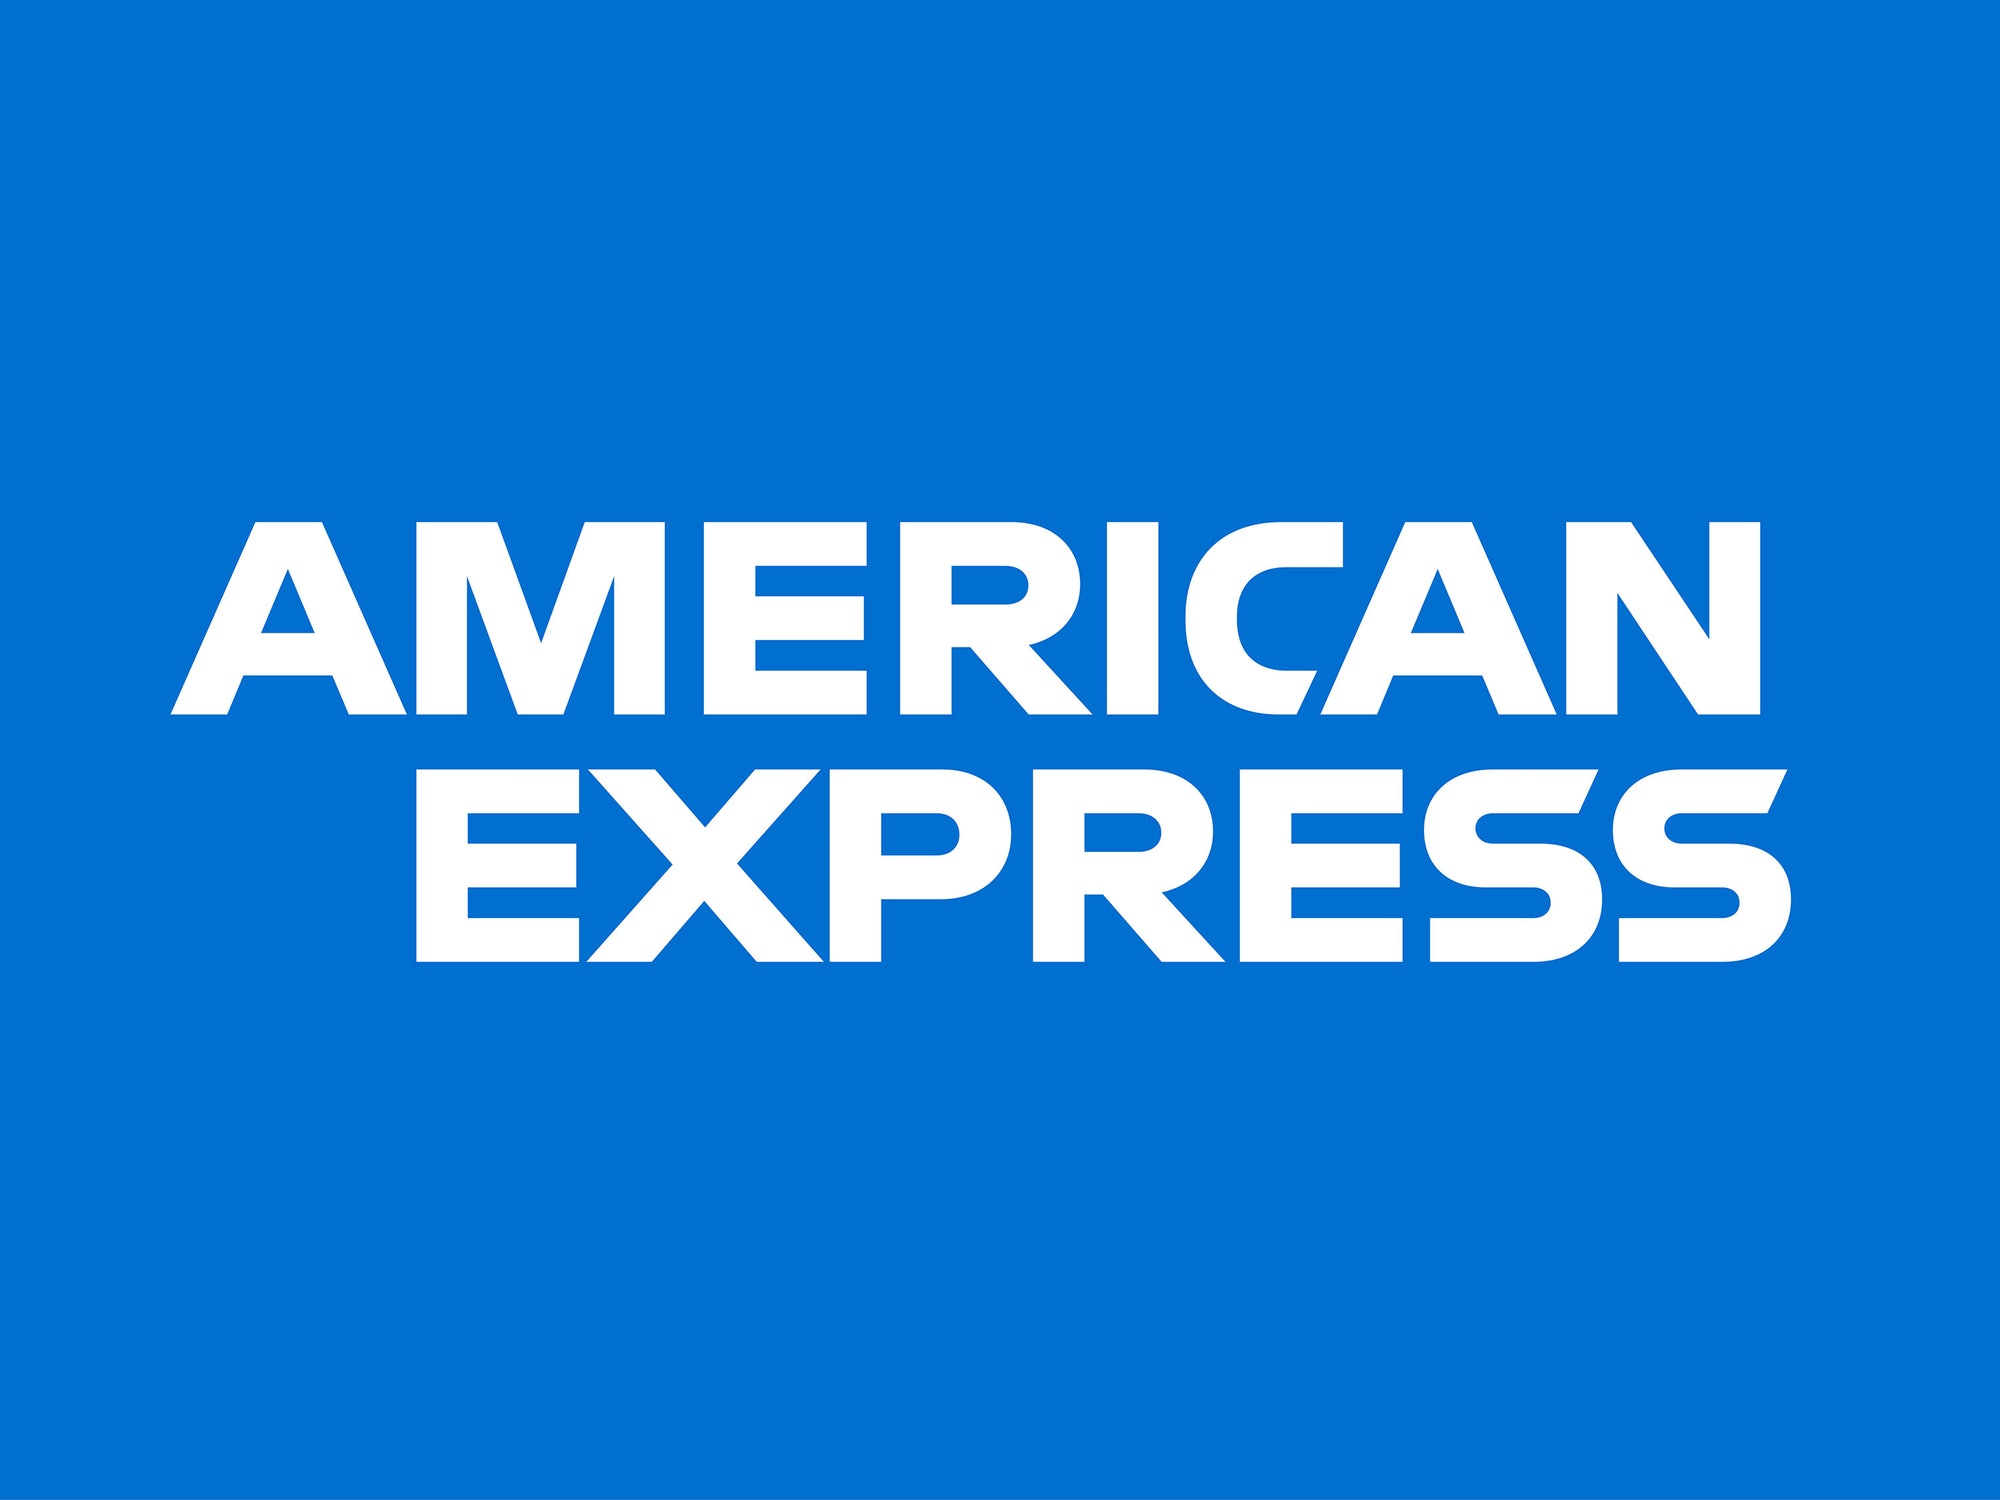 Redeeming American Express Membership Rewards for Maximum Value